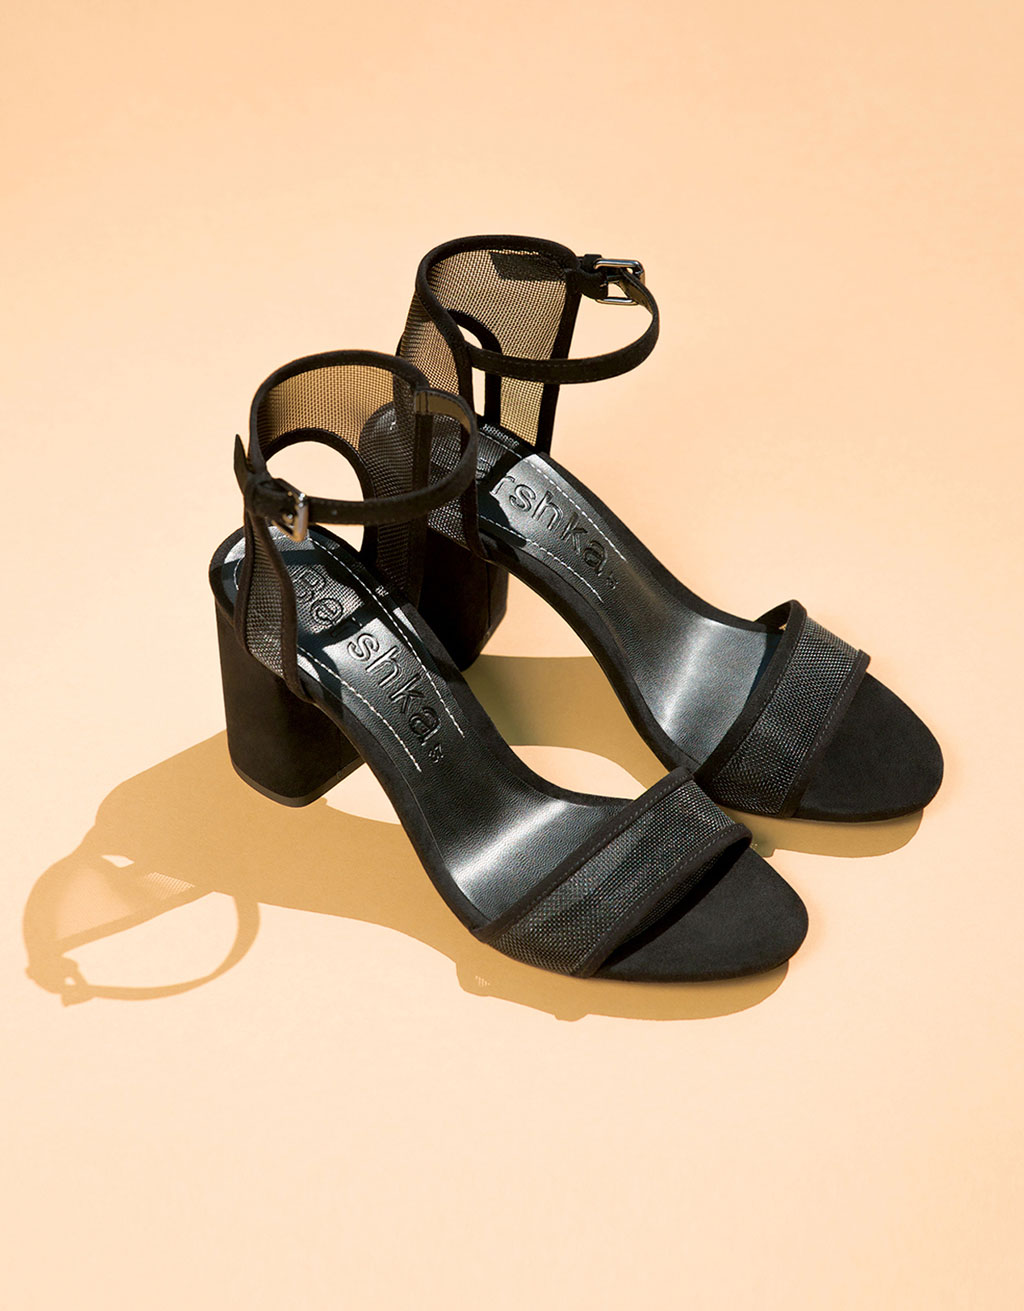 Mesh mid-heel sandals with ankle straps